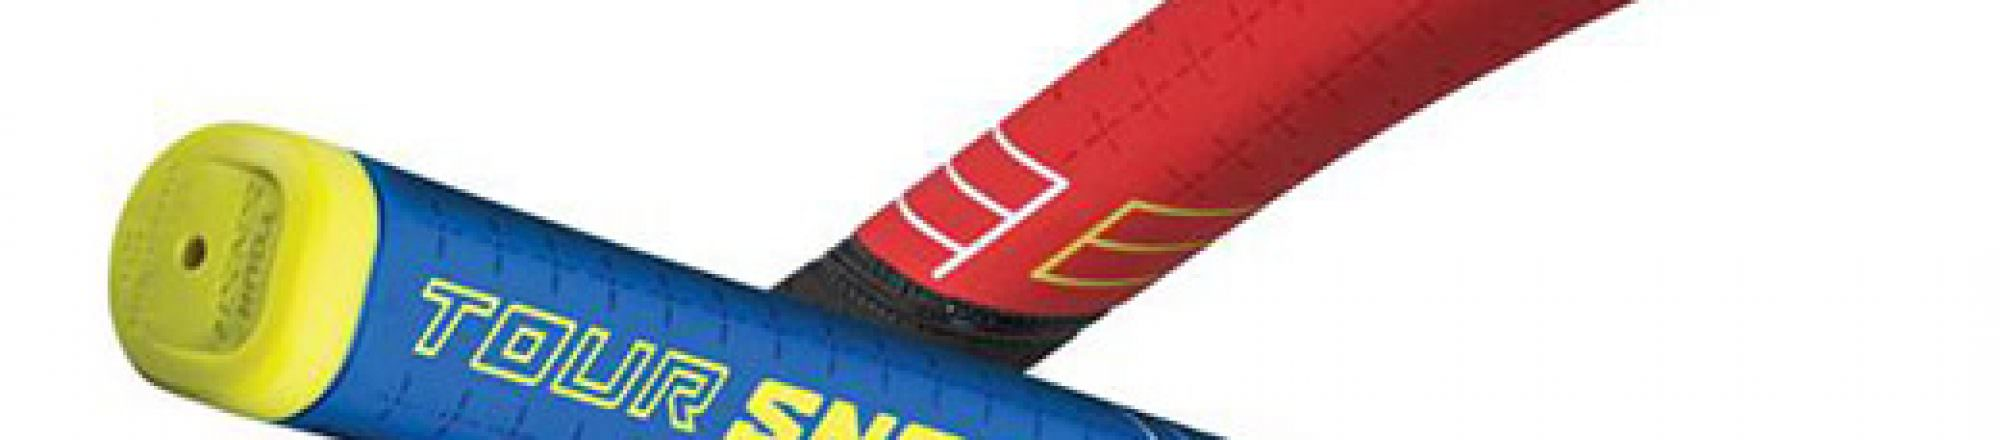 Equipment: Golf Pride introduces new Tour SNSR grips